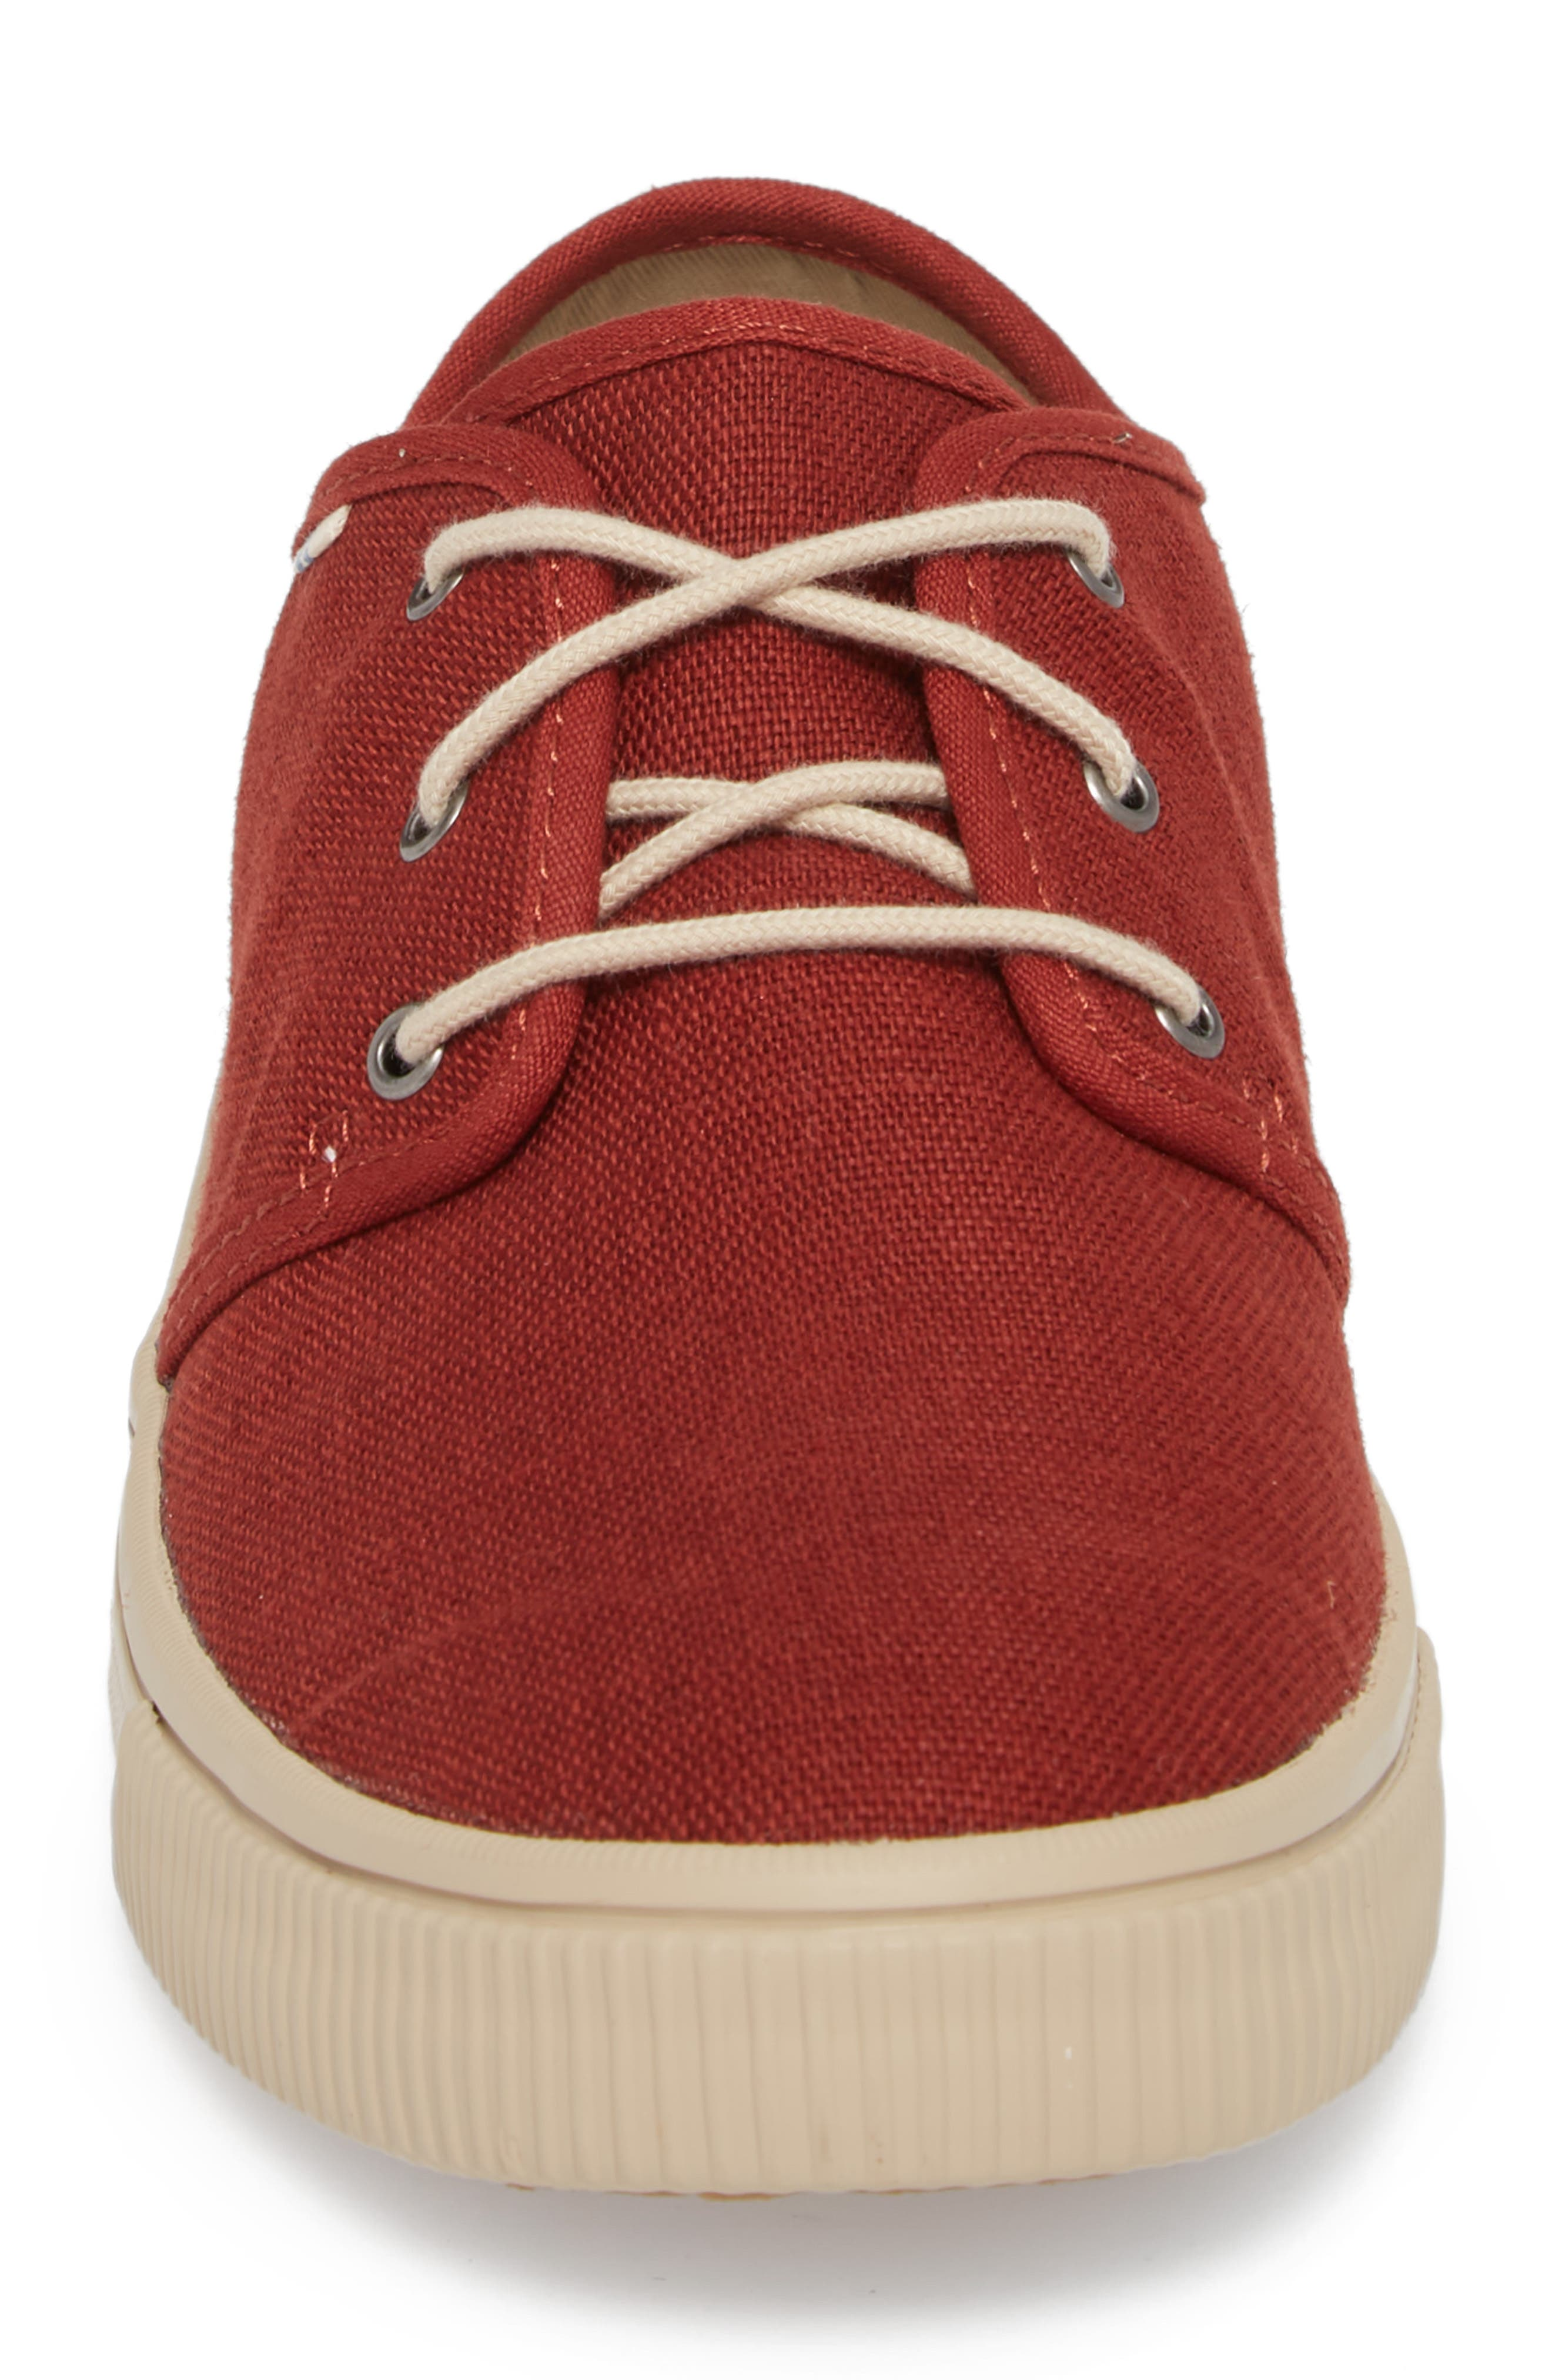 Carlo Low Top Sneaker,                             Alternate thumbnail 5, color,                             Burnt Henna Heritage Canvas